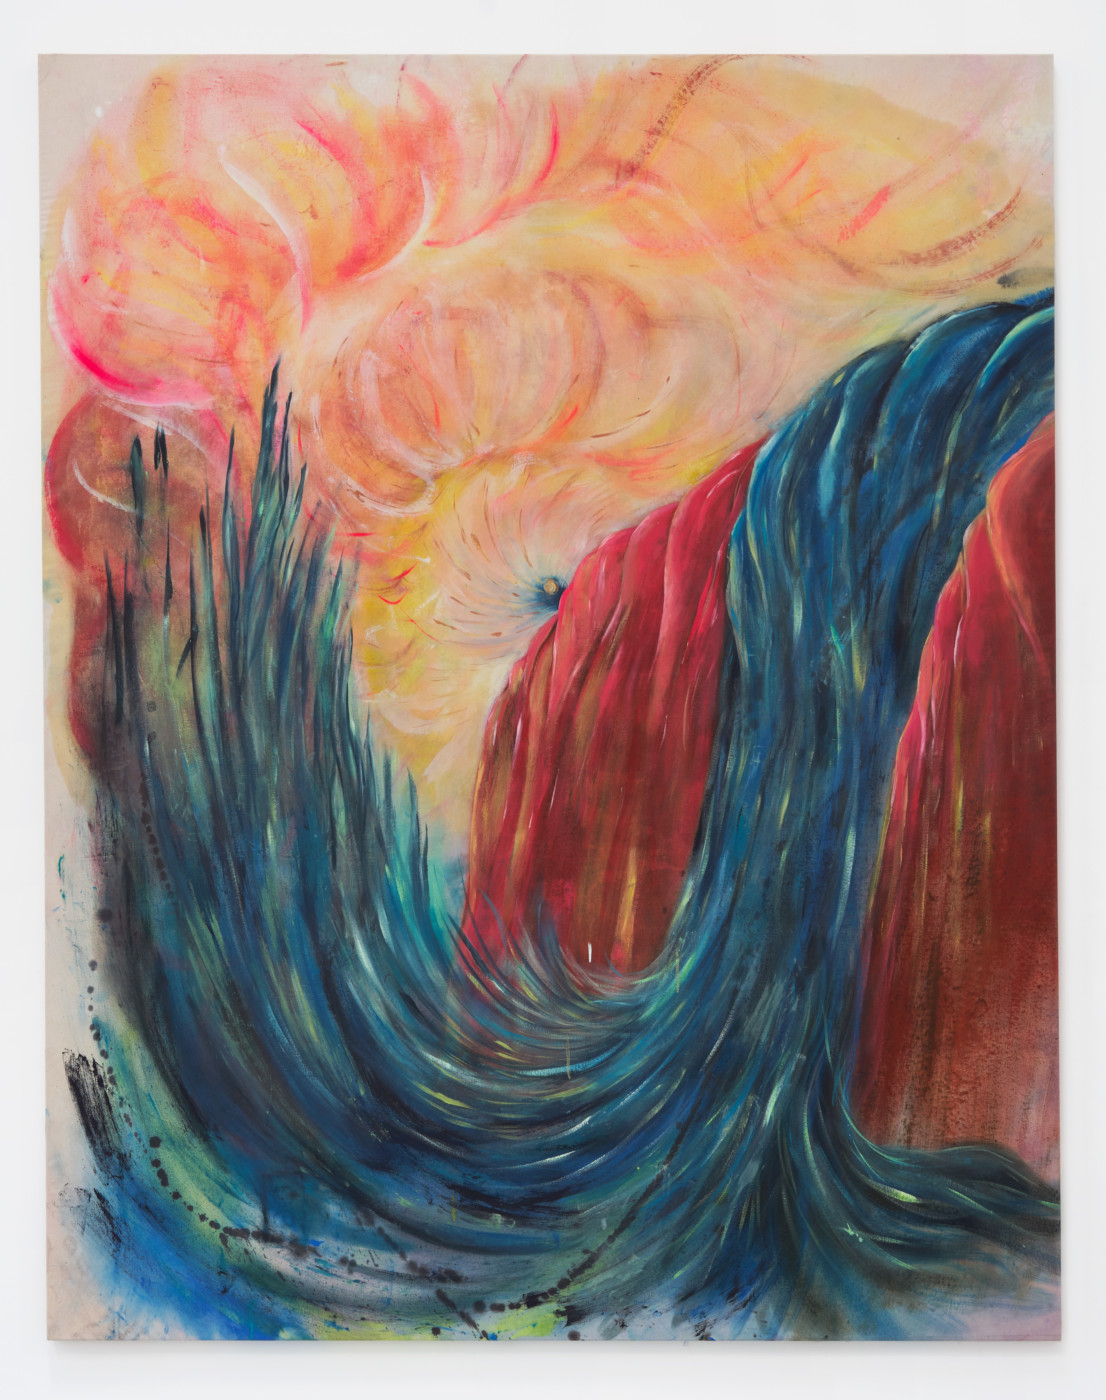 BORDERLINKING Nora Berman  A waterfall is the same as a pit of fire (psycho magickal dreamscape)</I>, 2020 Oil on muslin 200 x 160 cm / 78.7 x 63 in - High Art Gallery Paris